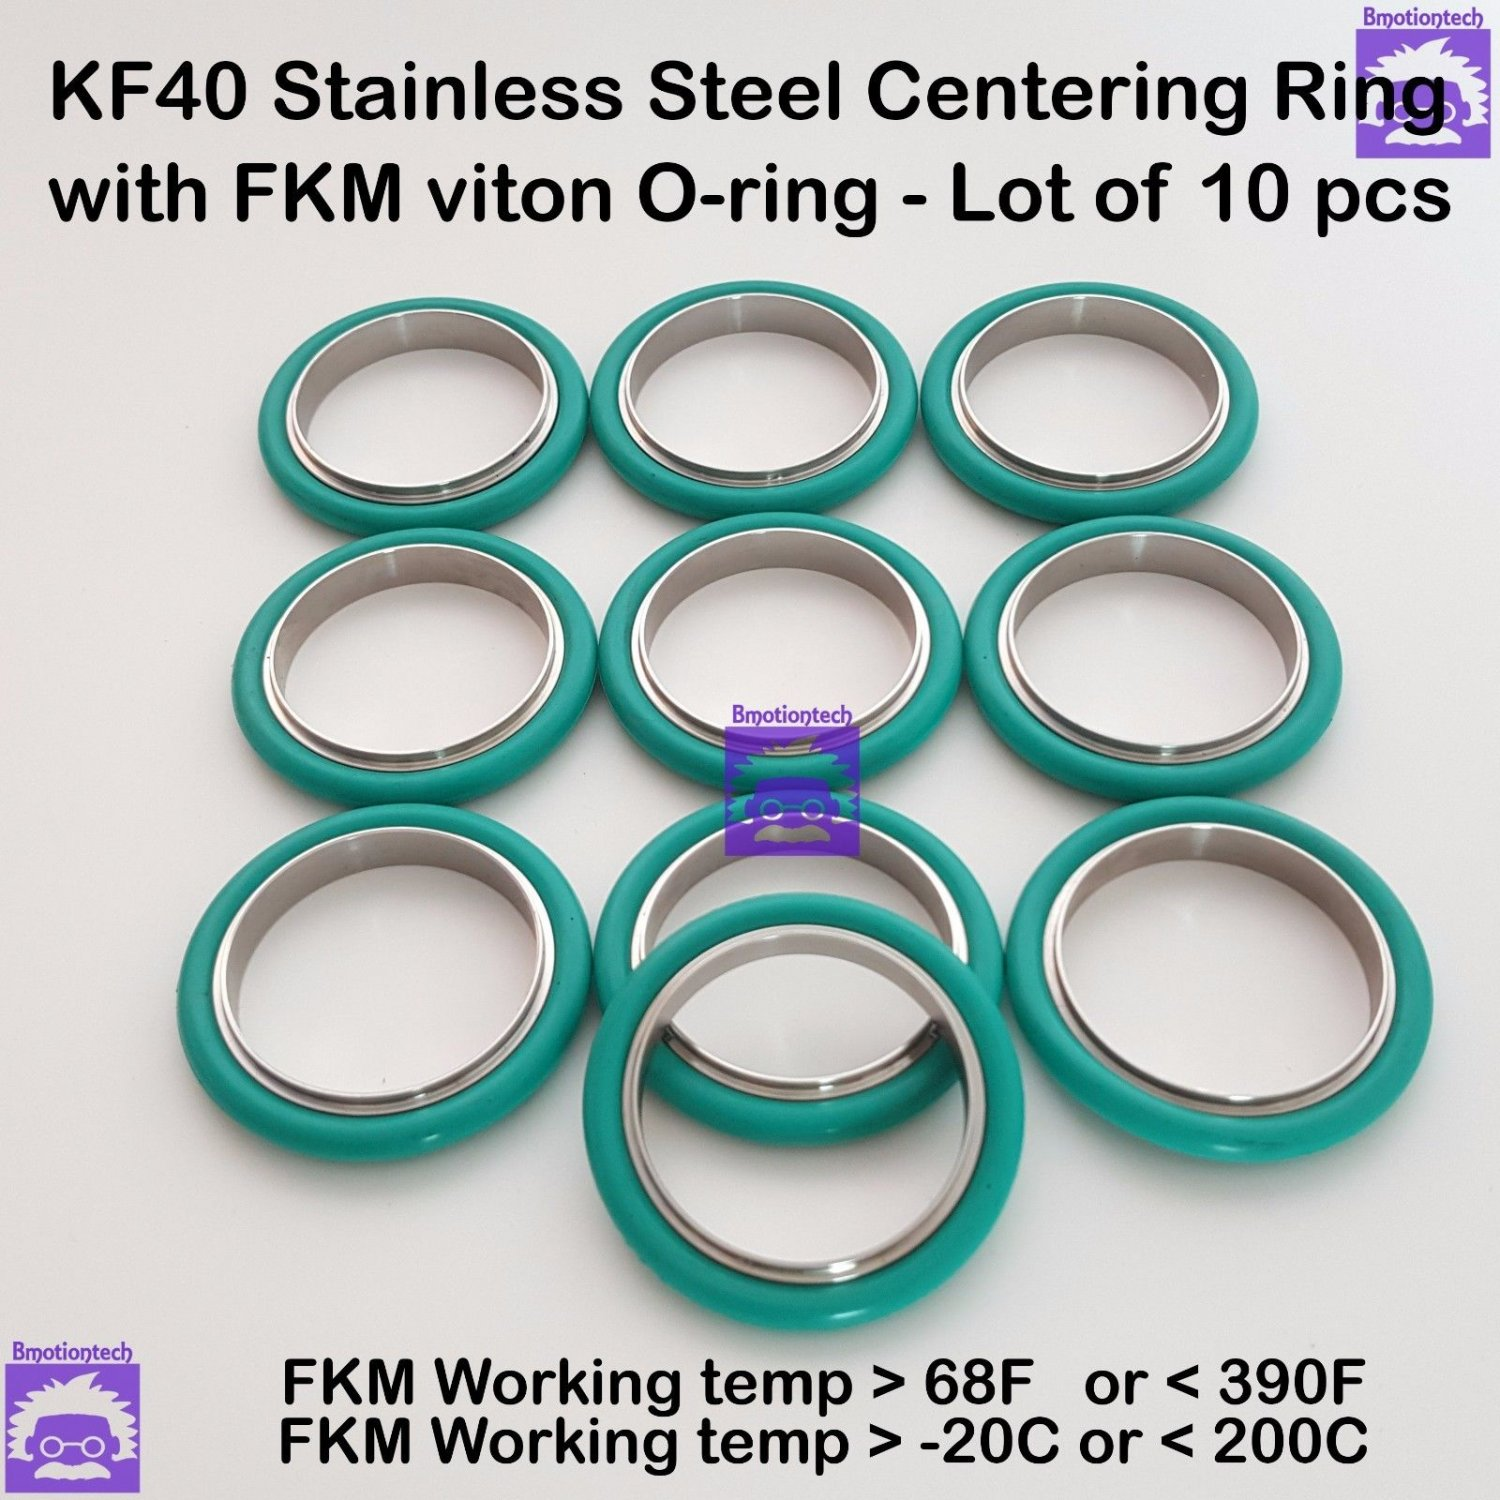 KF40 Stainless steel Vacuum centering ring with O-ring = FKM Viton (10 pcs pack)